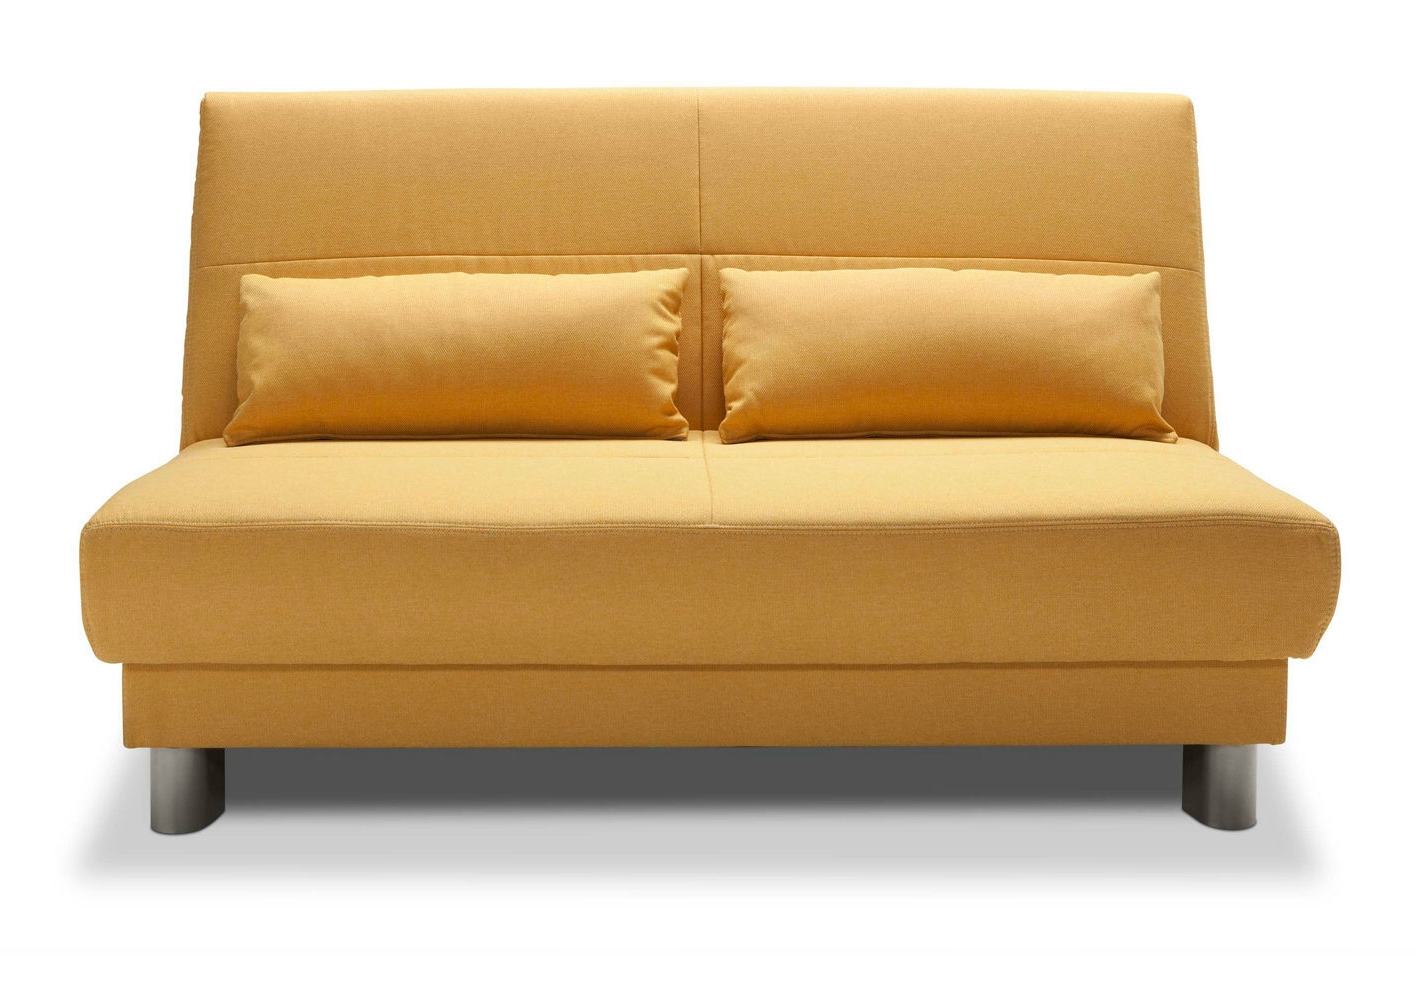 Polsterland nagold 7880001 schlafsofa aus stoff for Schlafcouch schlafsofa